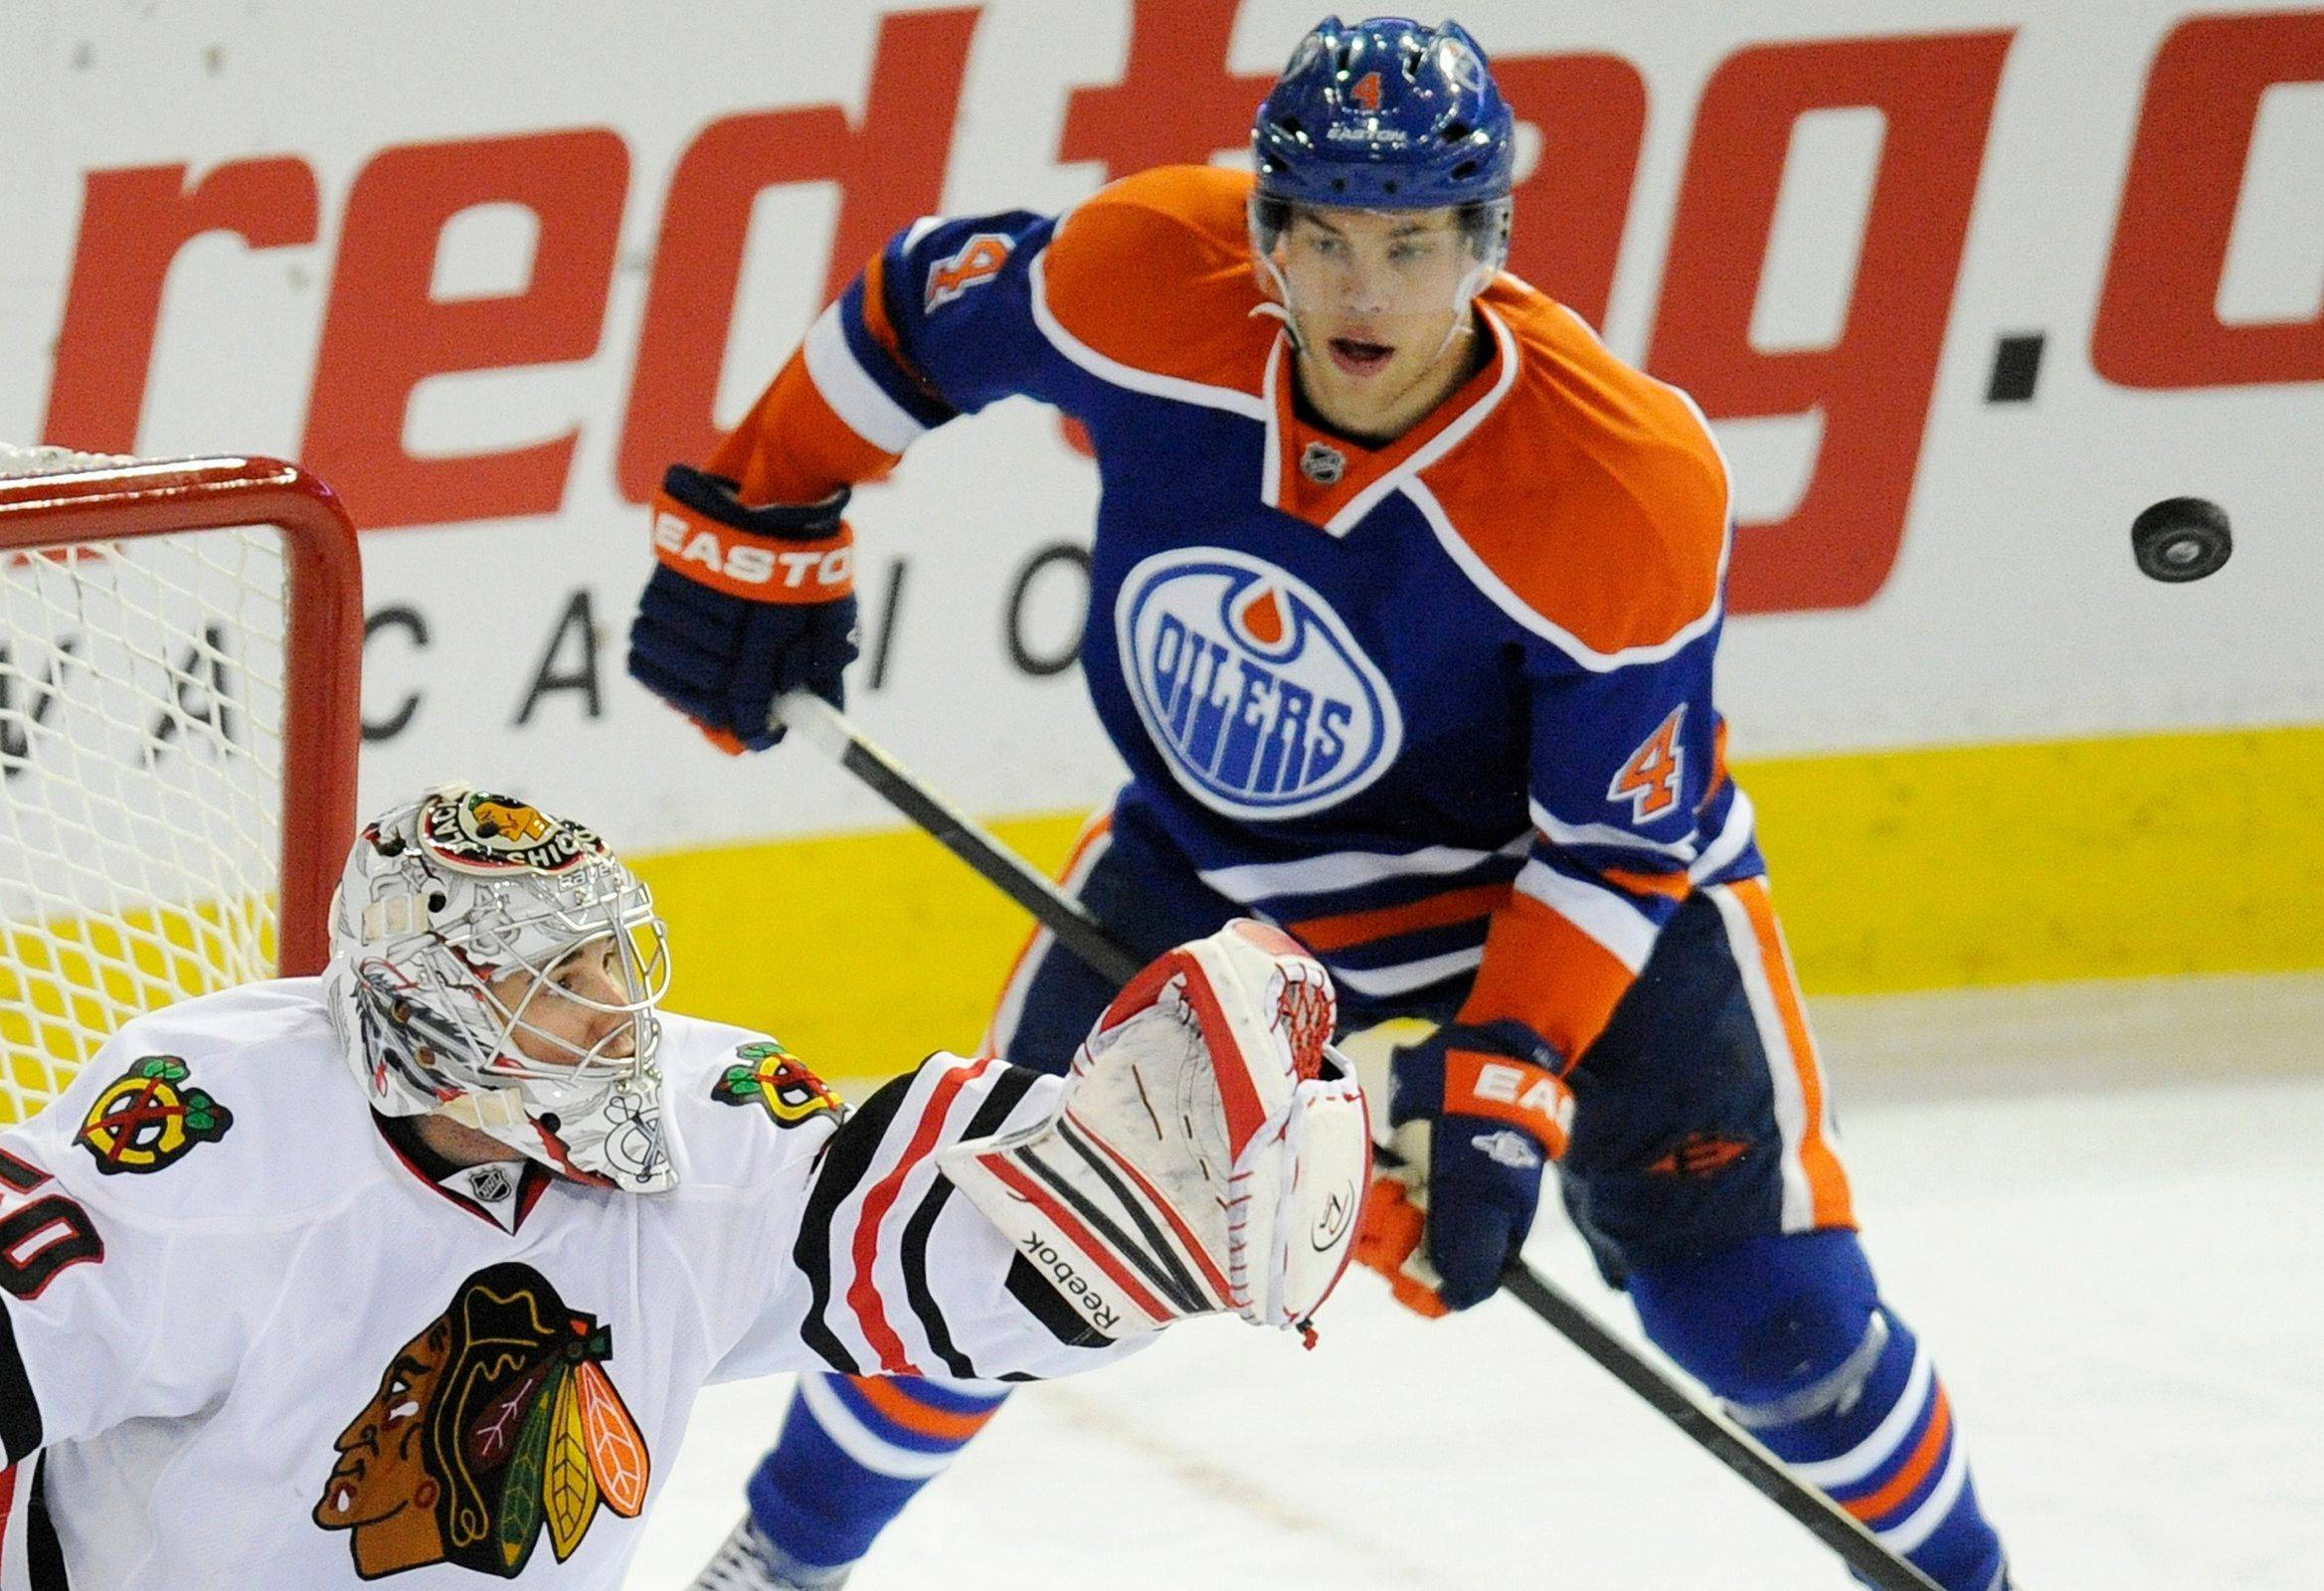 Edmonton Oilers' Taylor Hal, right, watches Chicago Blackhawks goalie Cory Crawford make a save during the second period of NHL hockey game action in Edmonton, Alberta, on Thursday, Feb. 2, 2012.